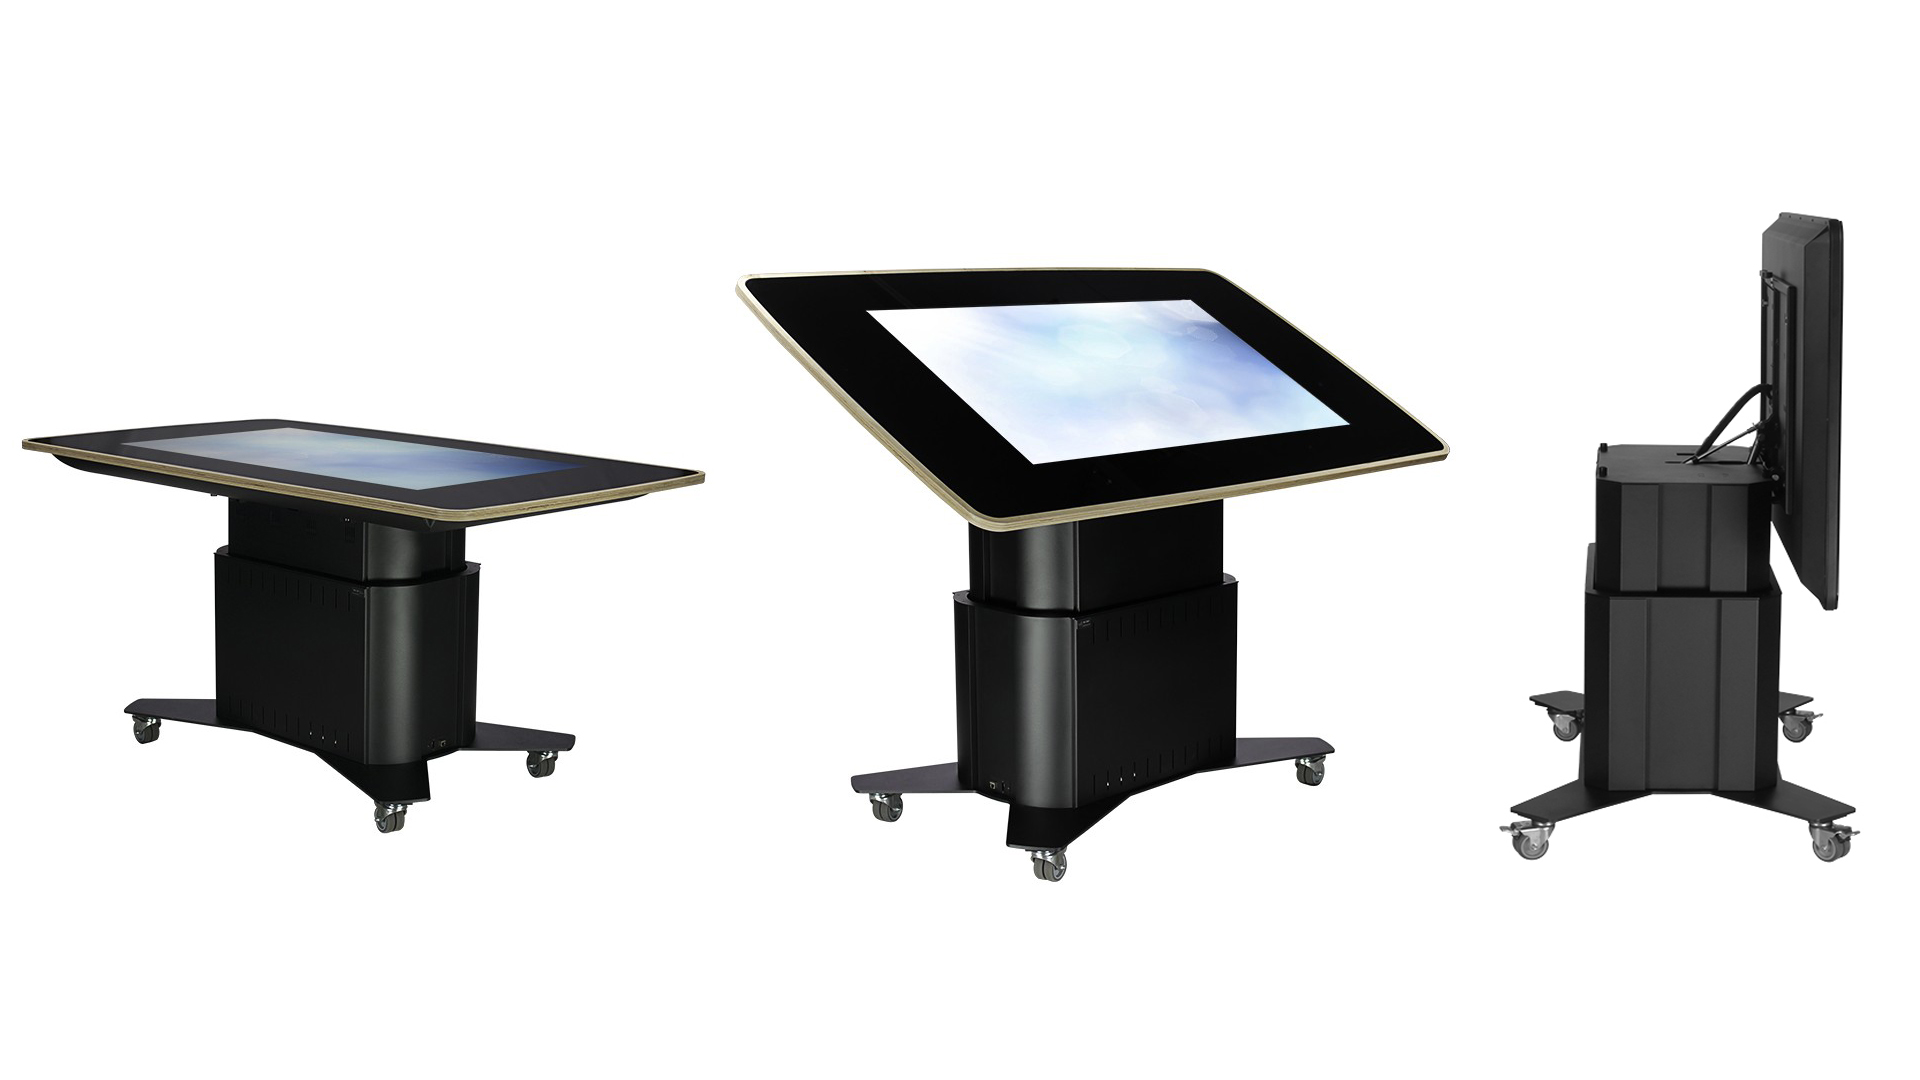 55 inch bespoke build PCAP multitouch table/kiosk.